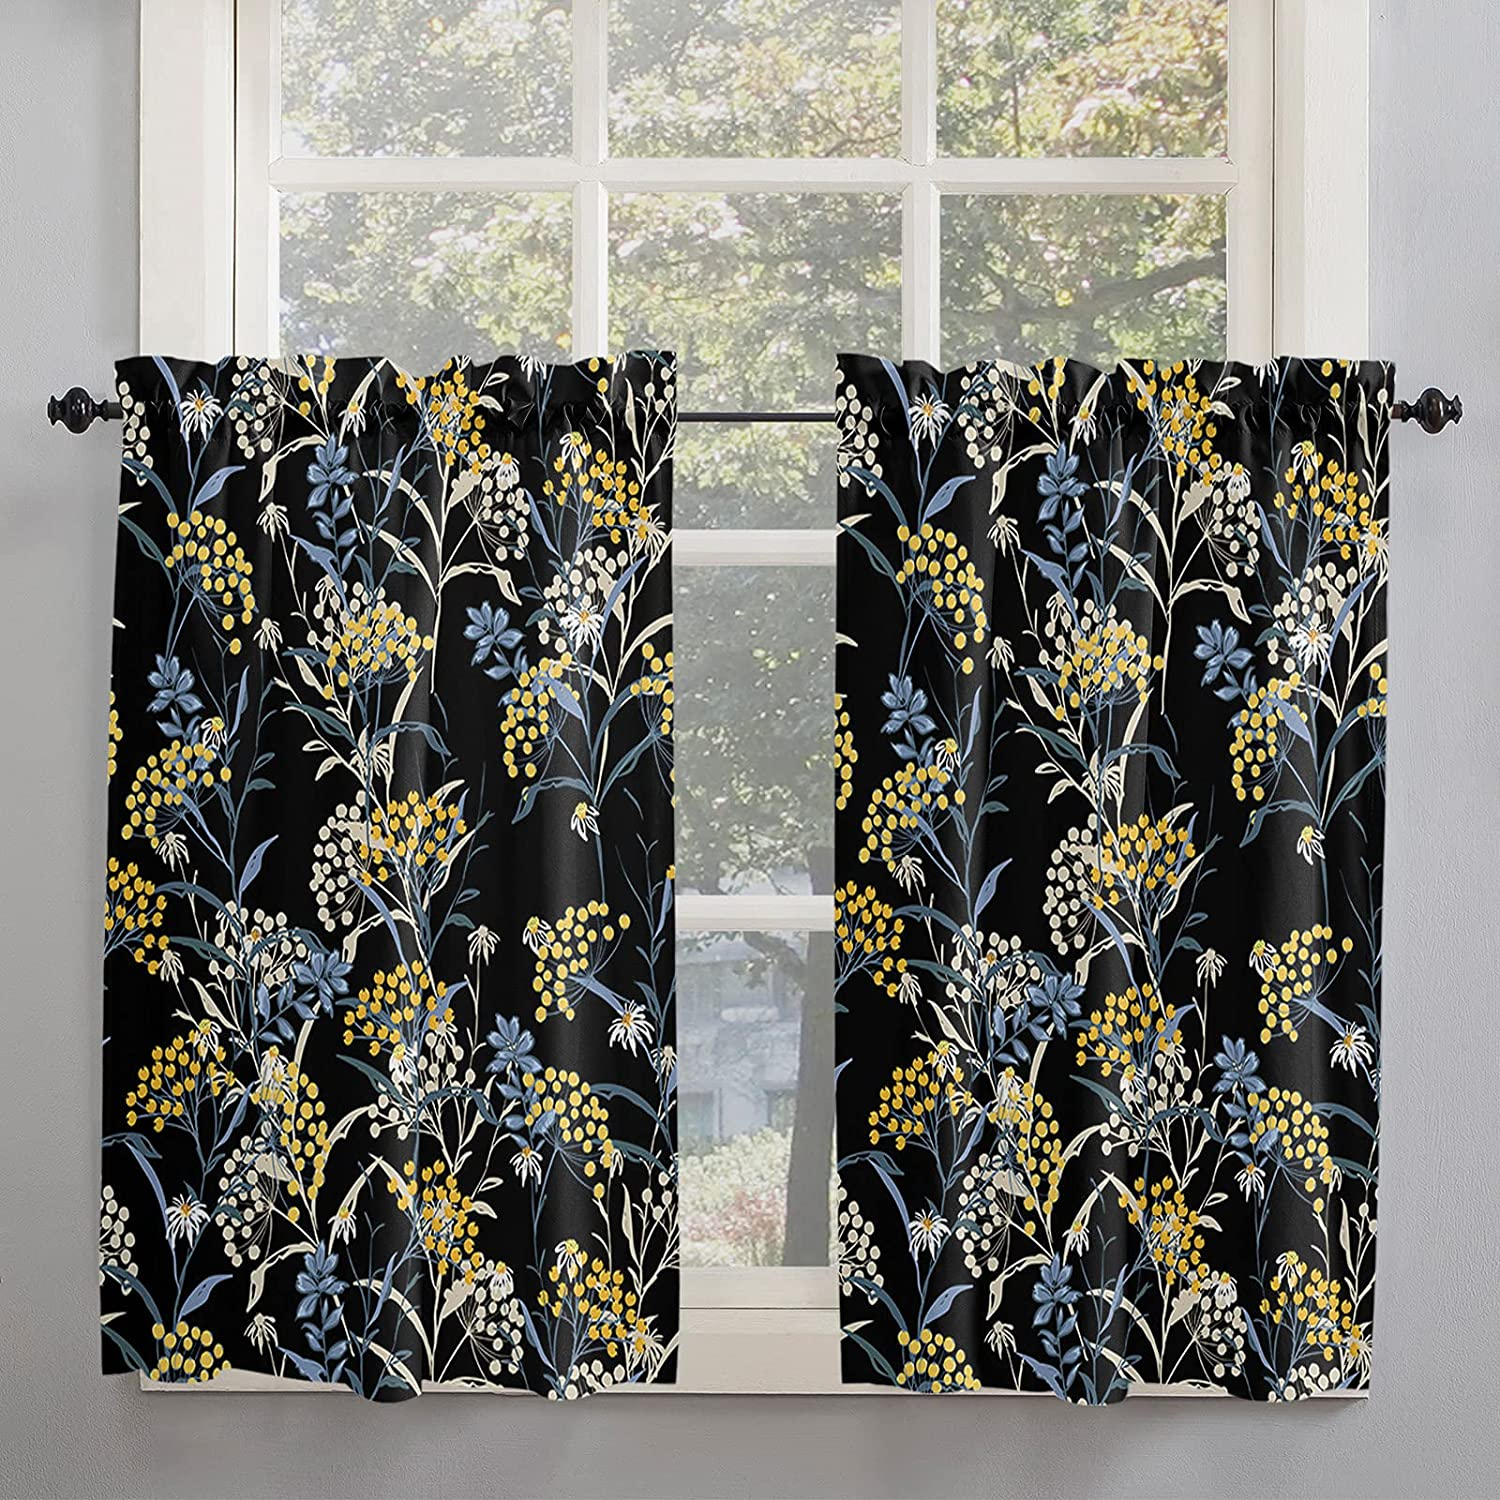 Rustic cheap Style Kitchen Curtains 54 Inch Length Fall for Import Windows R